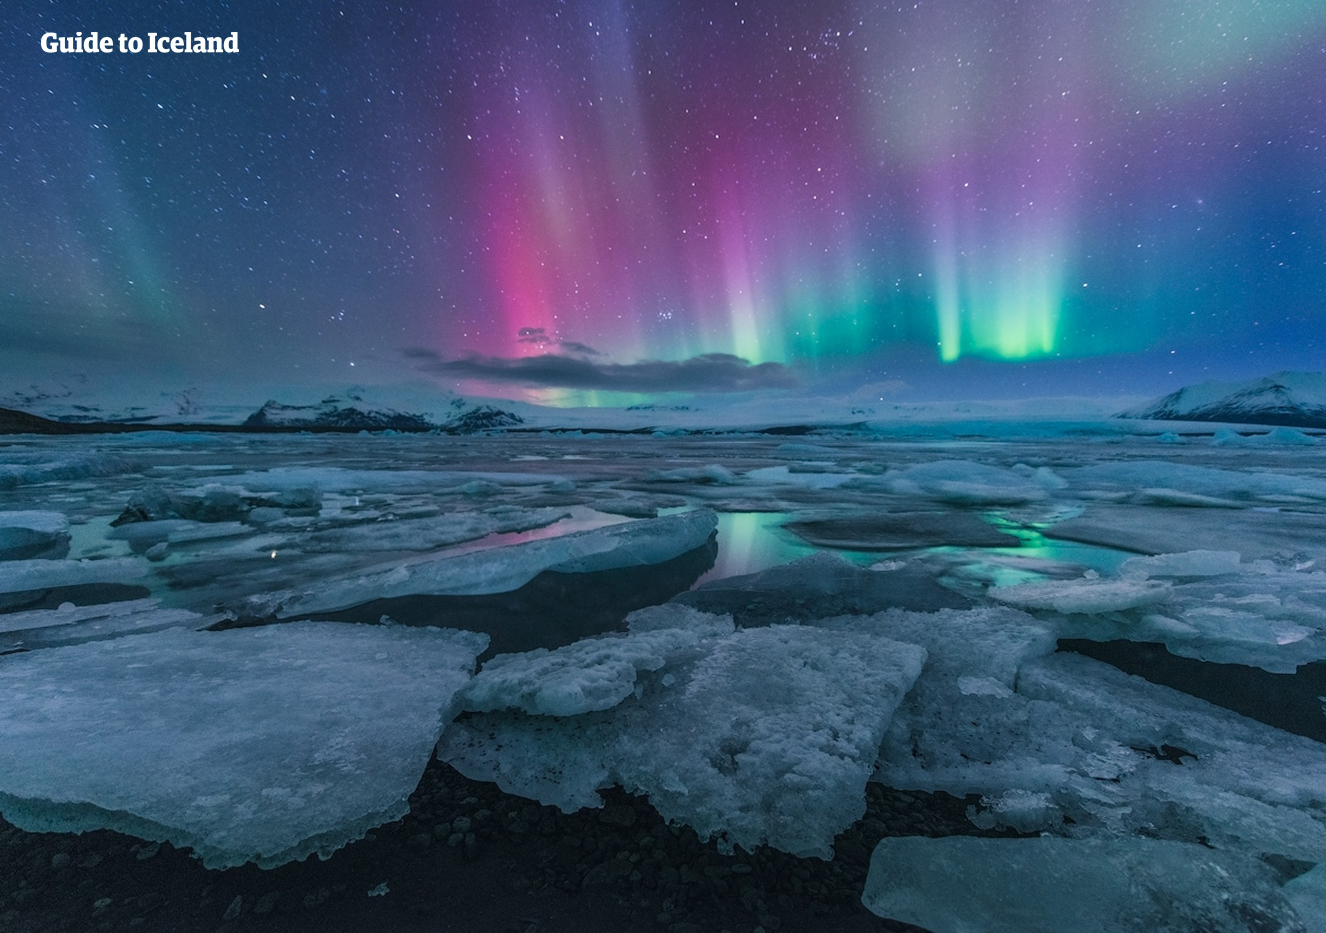 Blue and pink Northern Lights mirrored in the calm, blue surface of Jökulsárlón Glacier Lagoon.